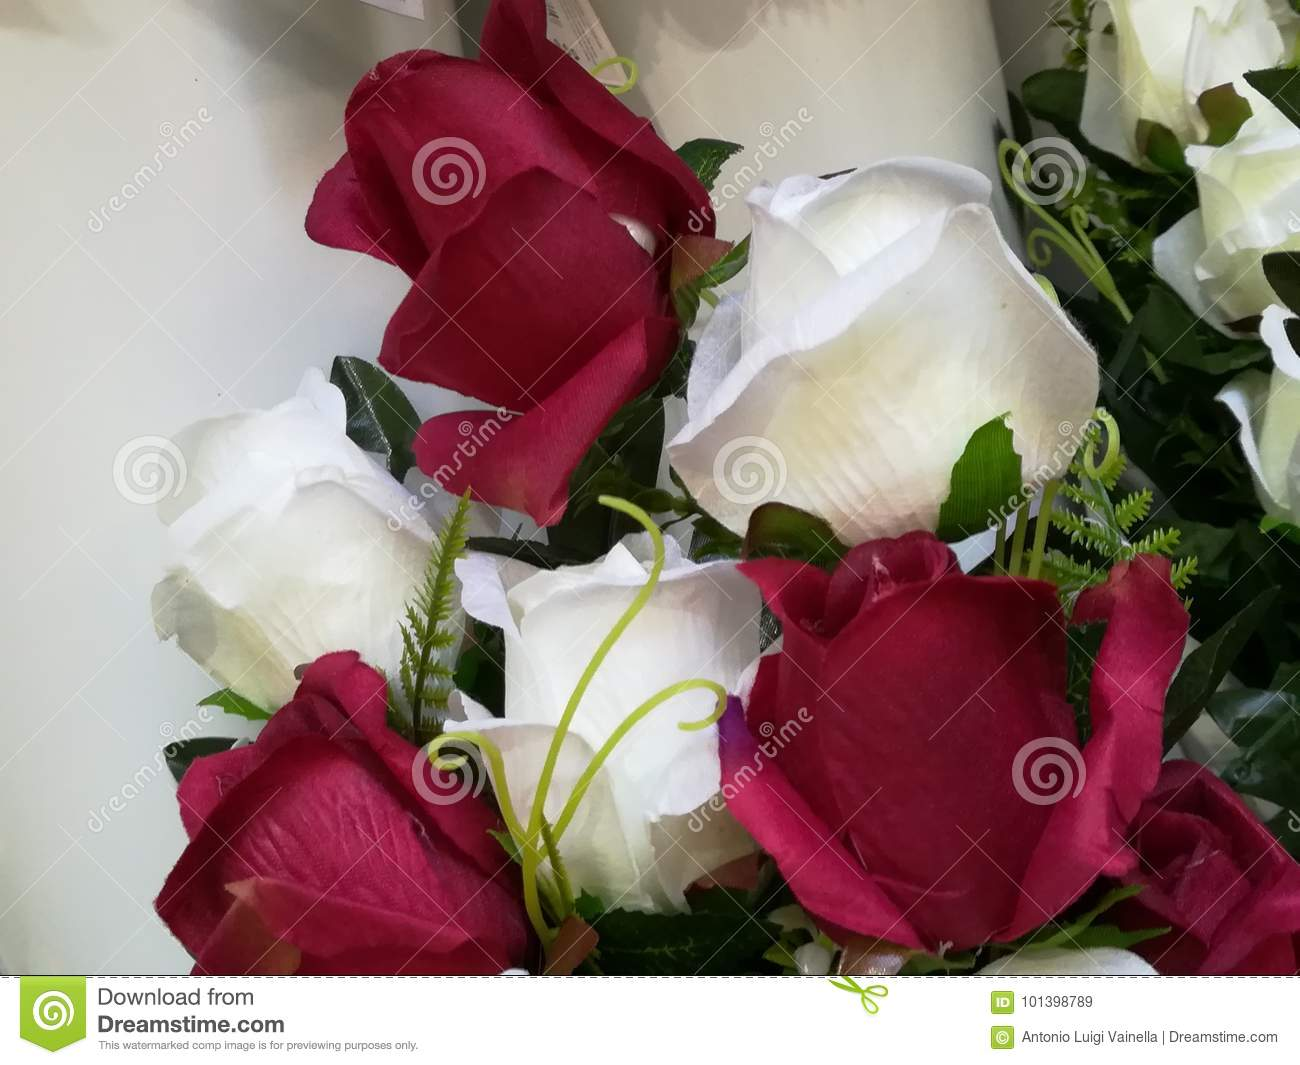 A bouquet of red and white roses stock image image of beloved a bouquet of red and white roses izmirmasajfo